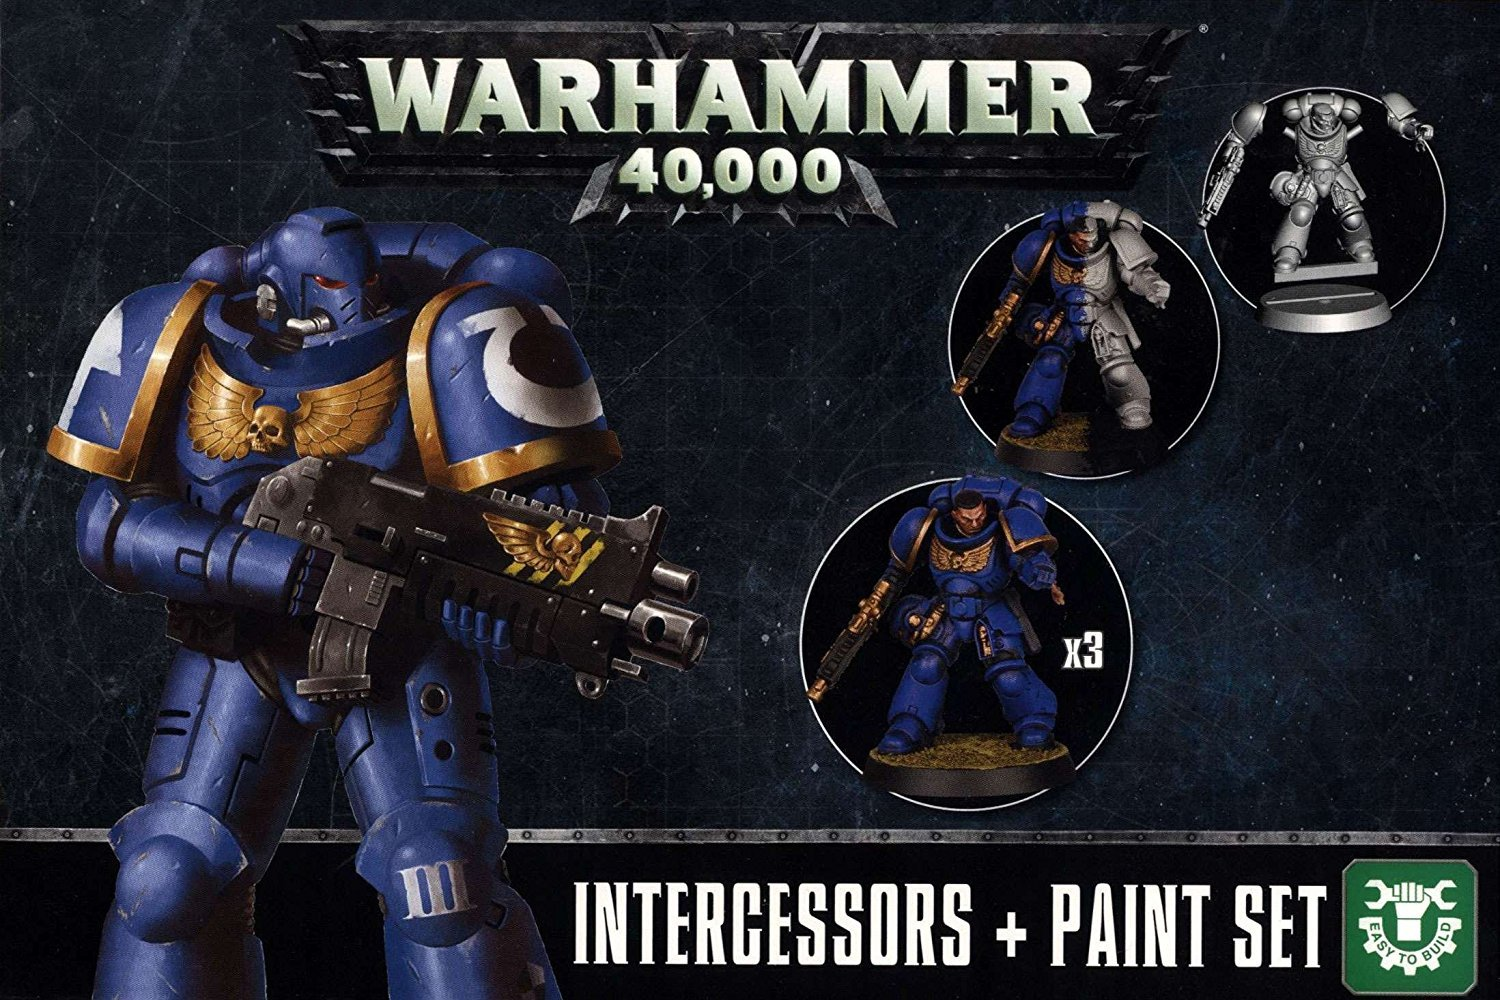 Warhammer 40,000 Intercessors + Paint Set